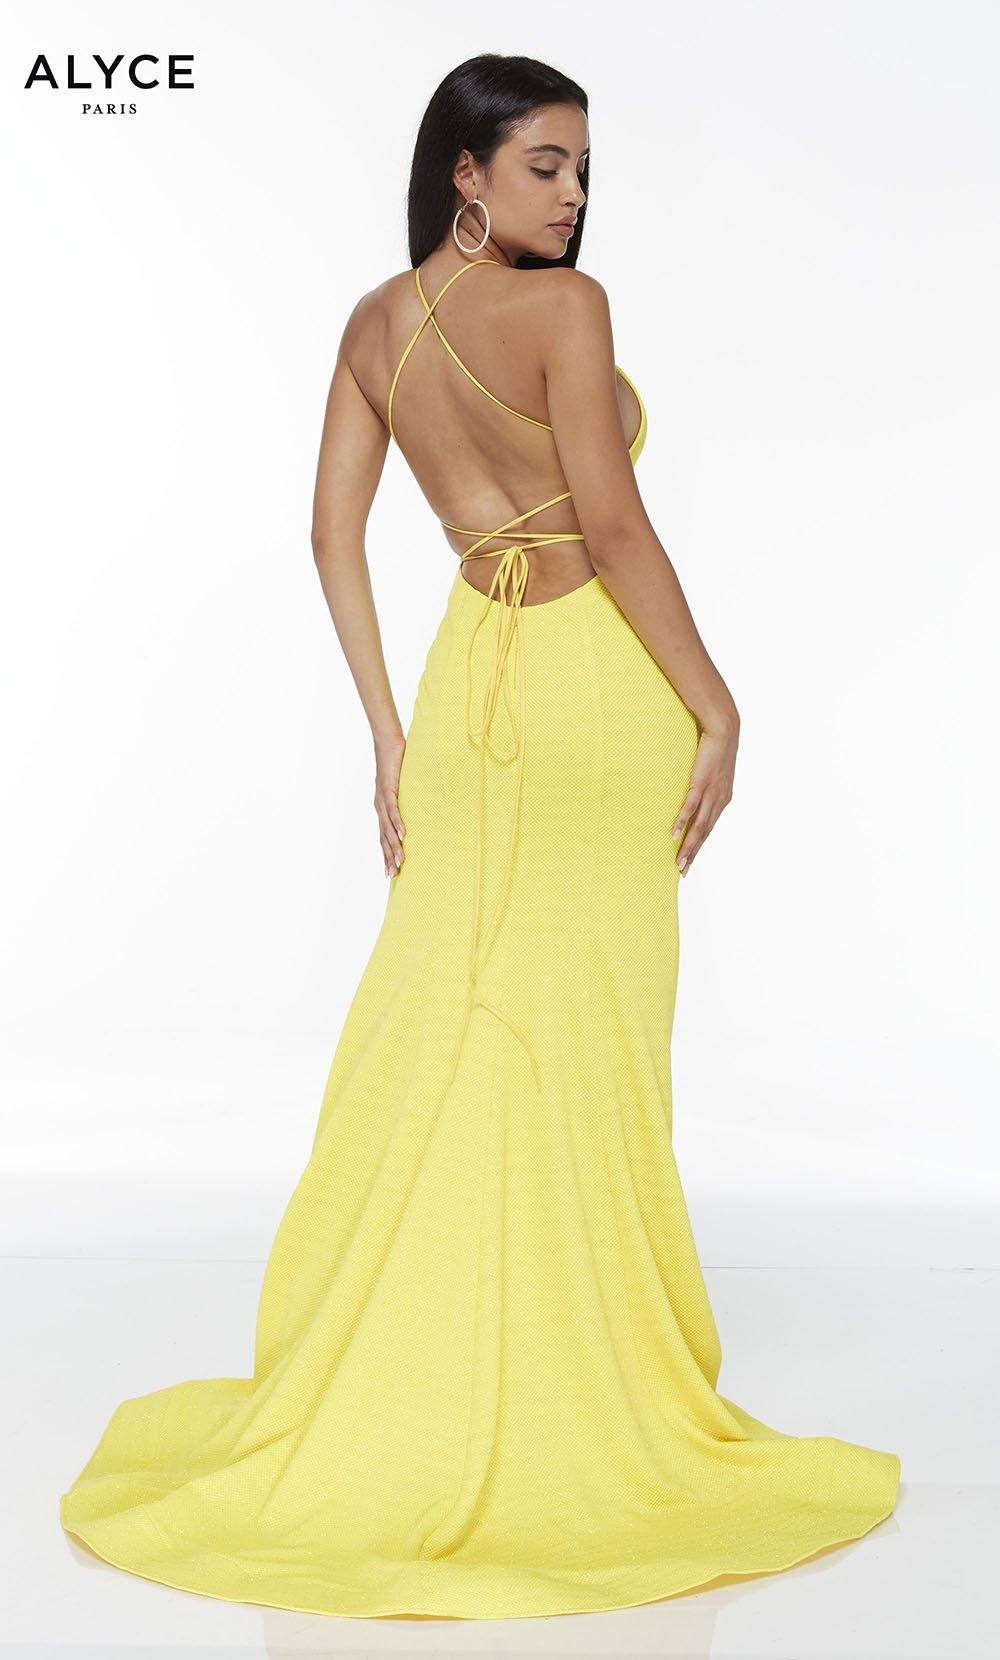 Bright Yellow mermaid dress with a strappy back and a train